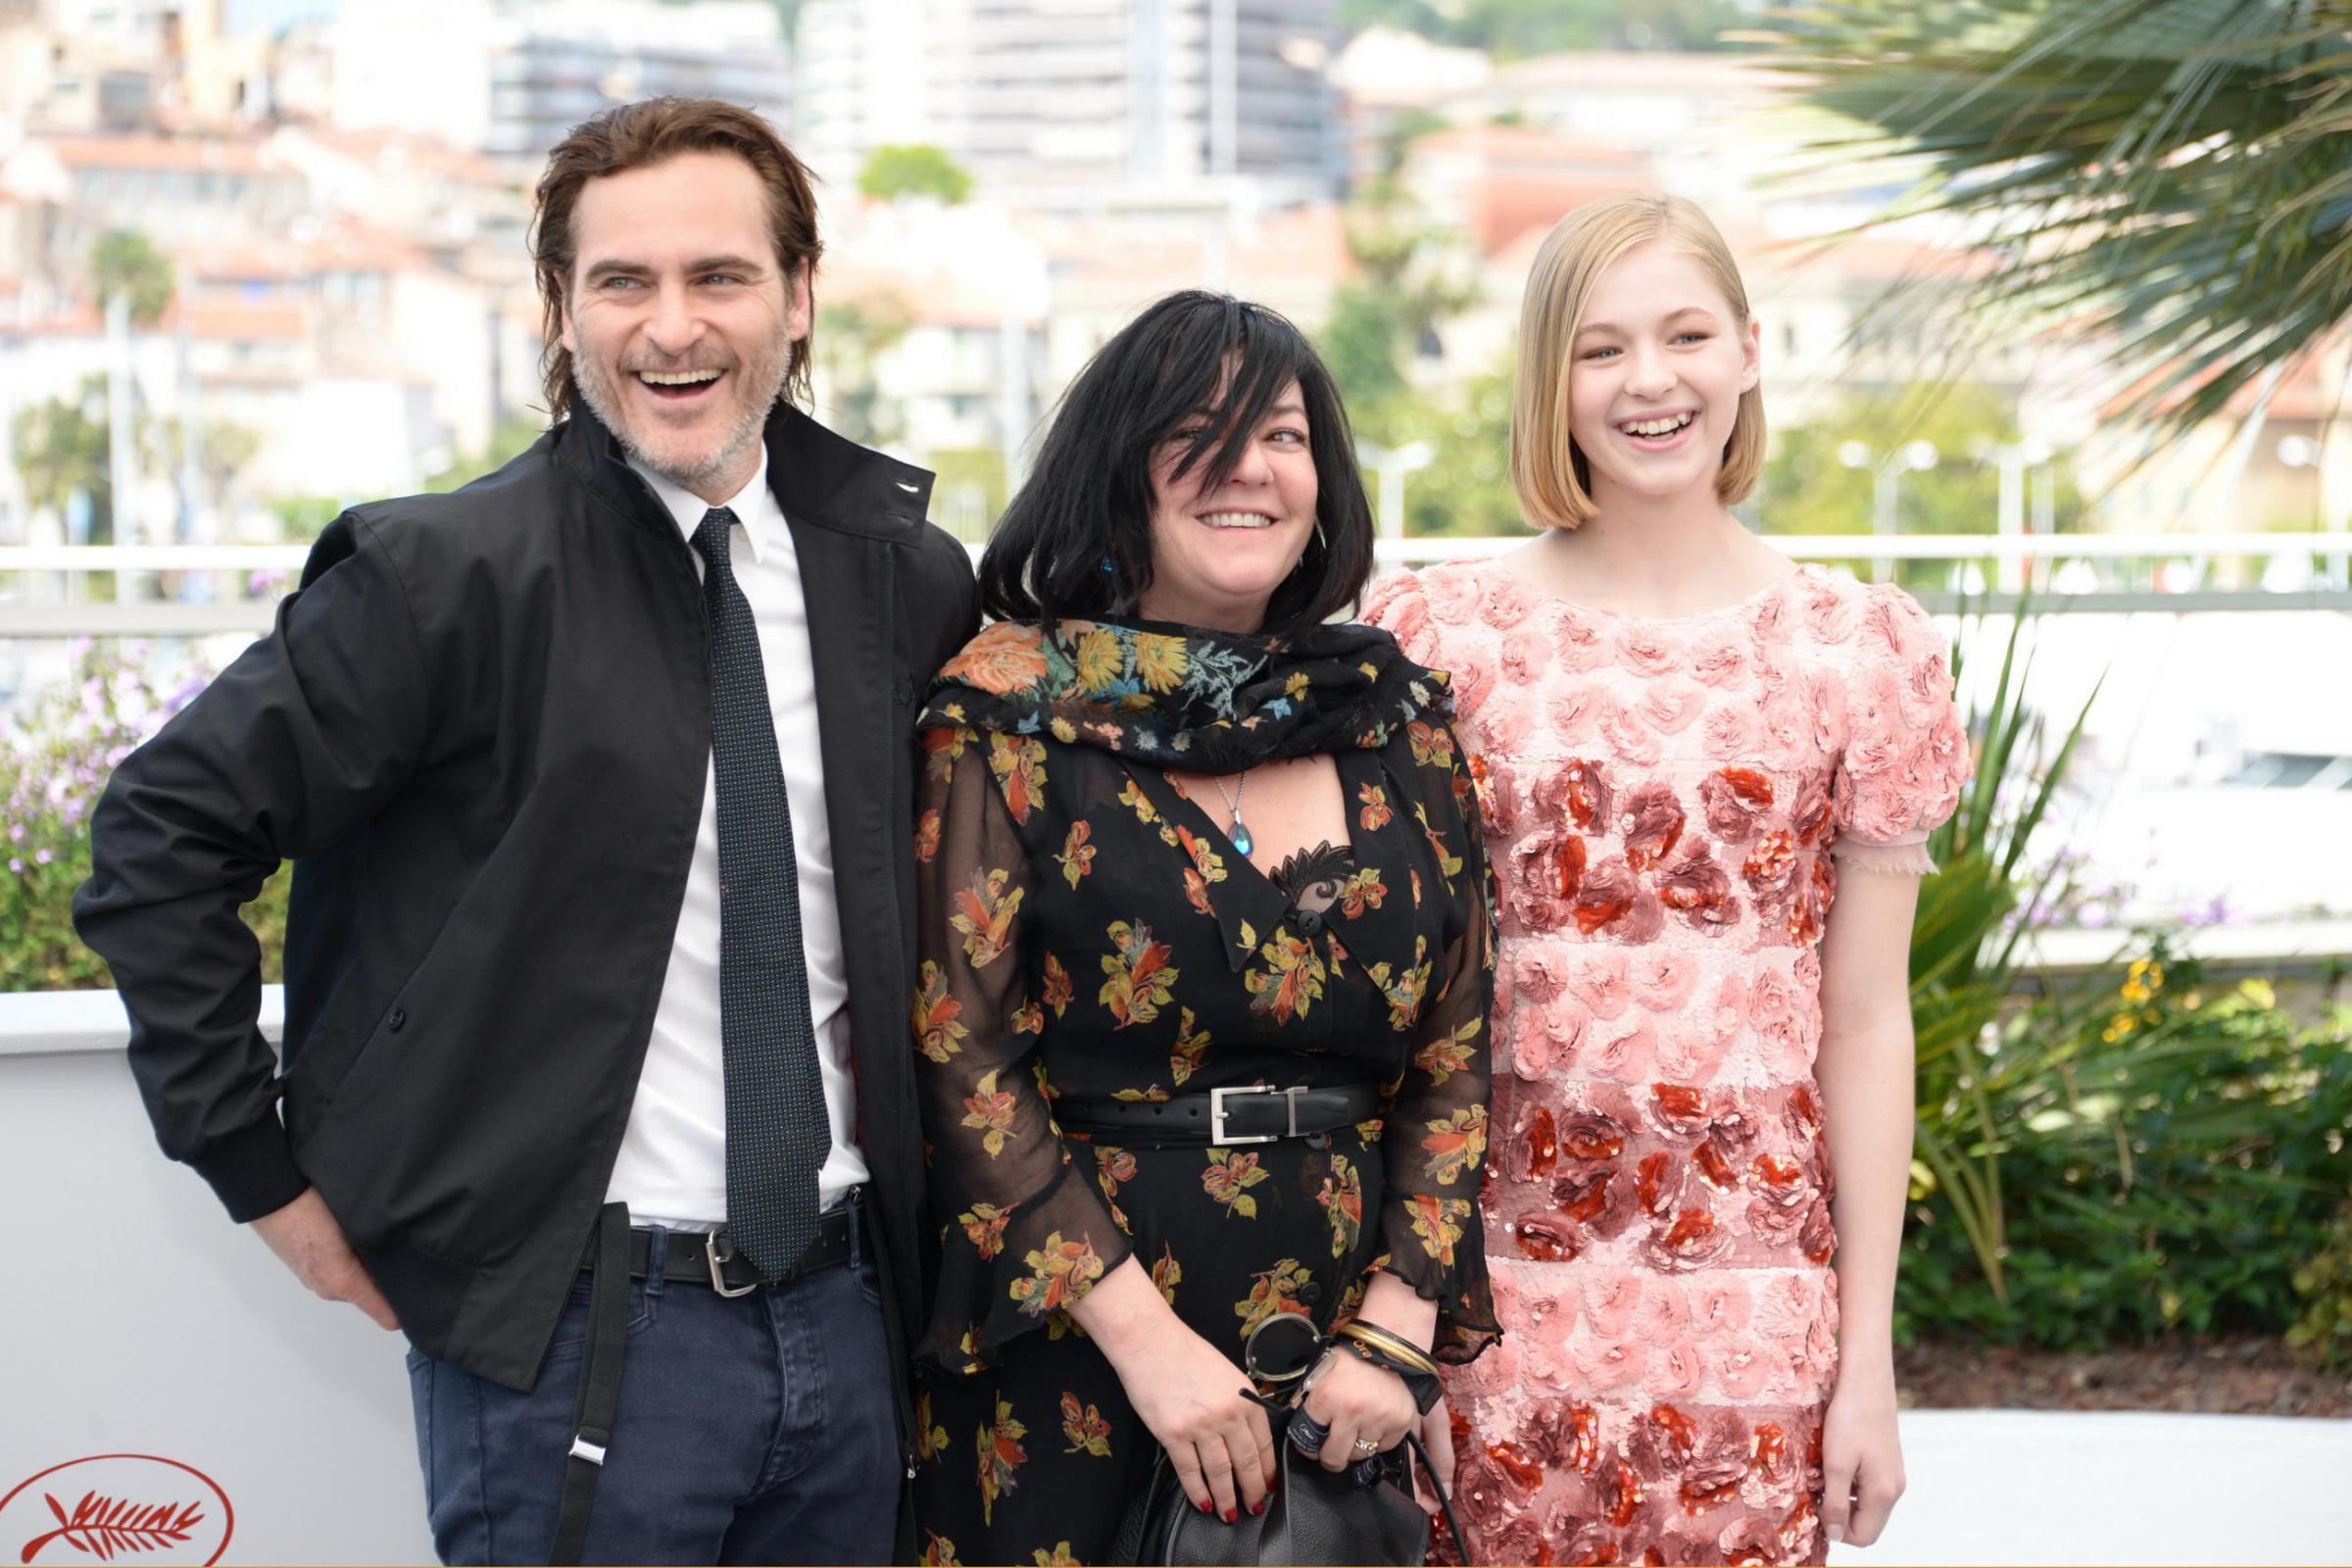 Scots filmmaker Lynne Ramsey lays into Netflix as she premiers her new movie at Cannes Film Festival